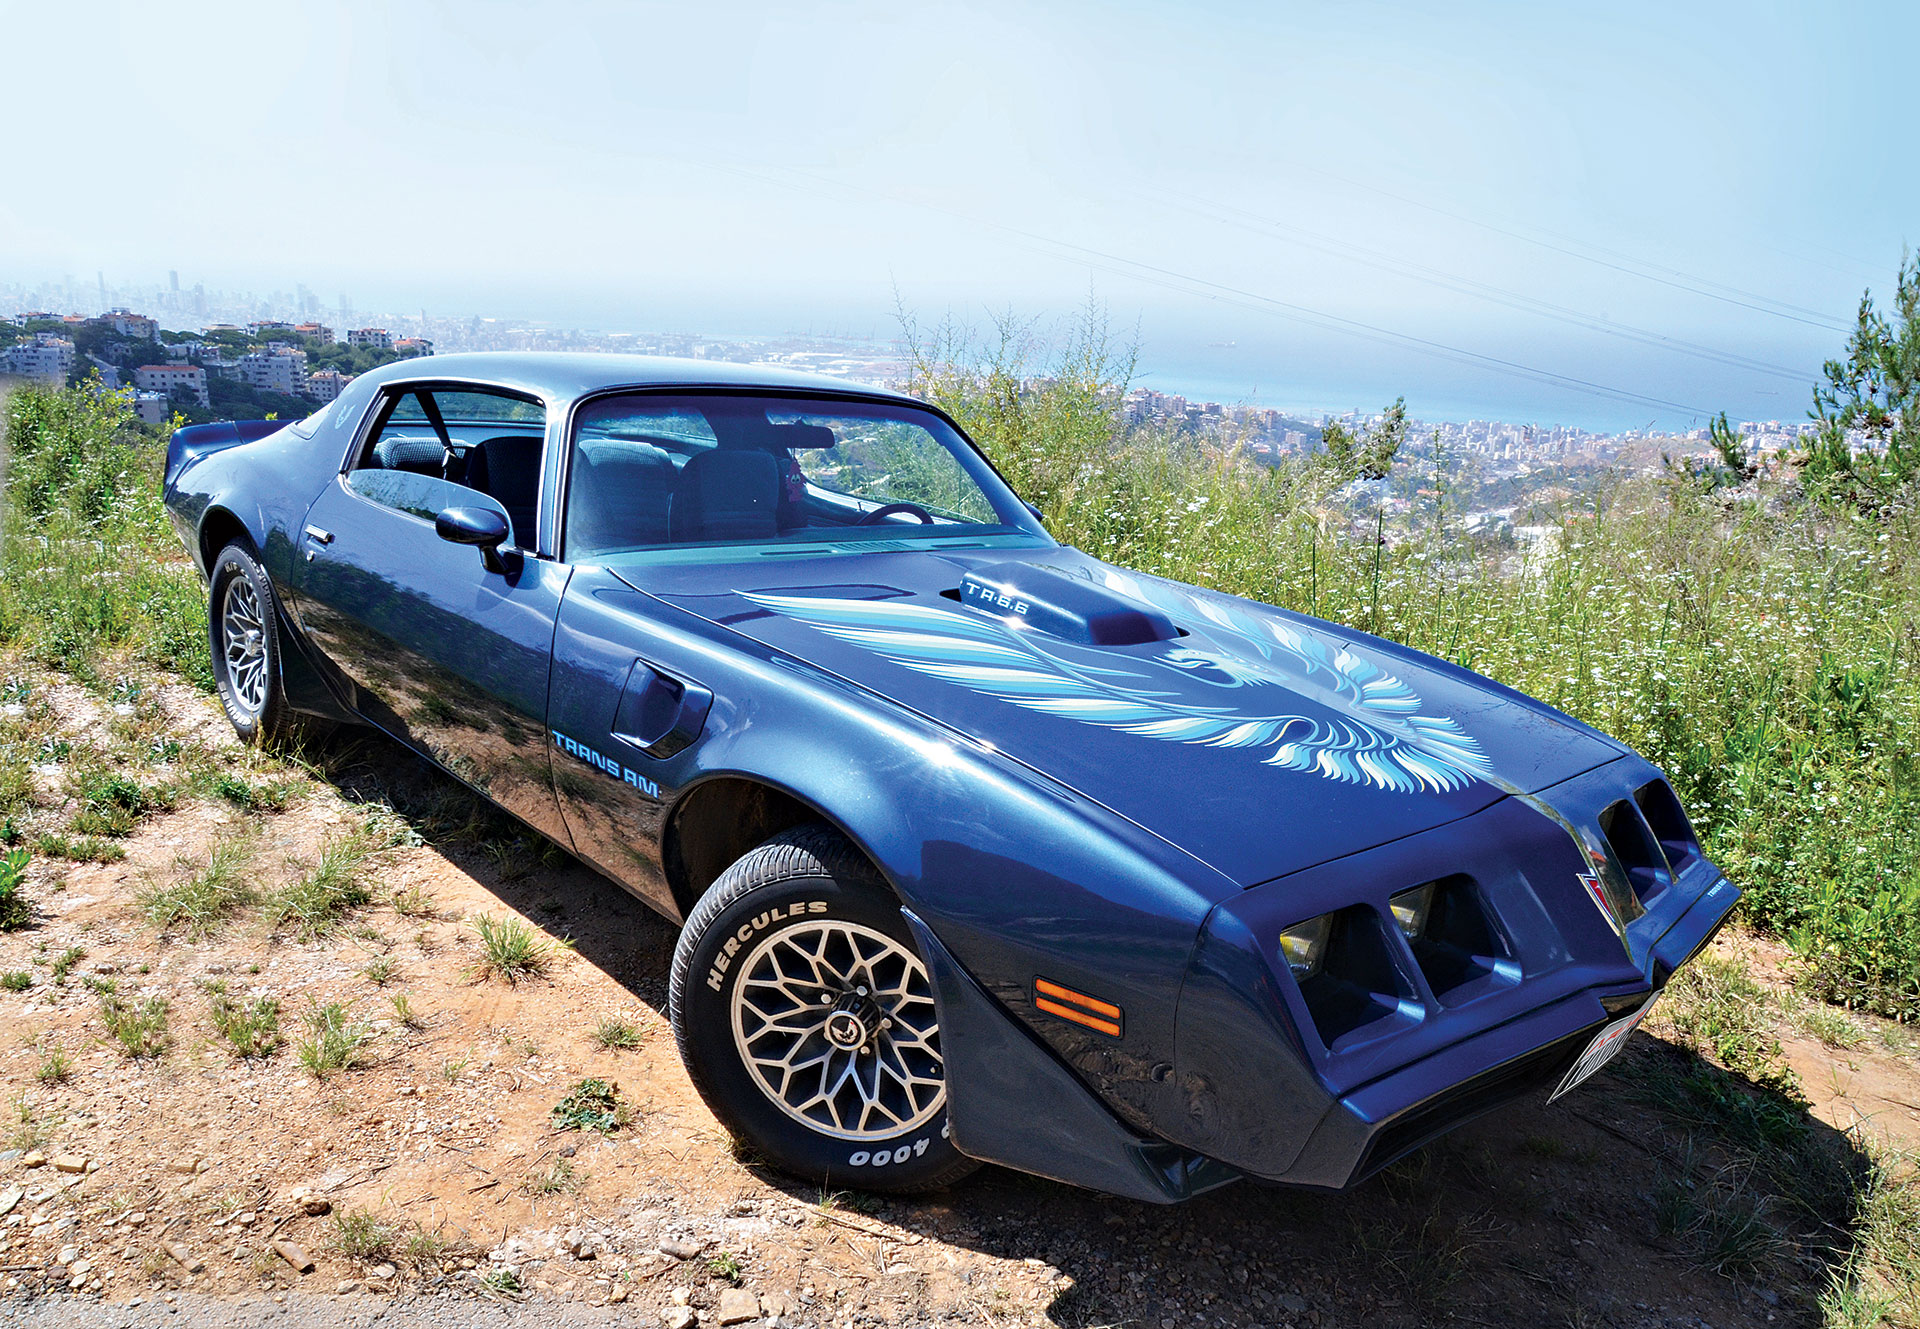 1979 Trans Am Picture 1979 Trans Am Muscle Car Inspired By Racing Arab Motor World